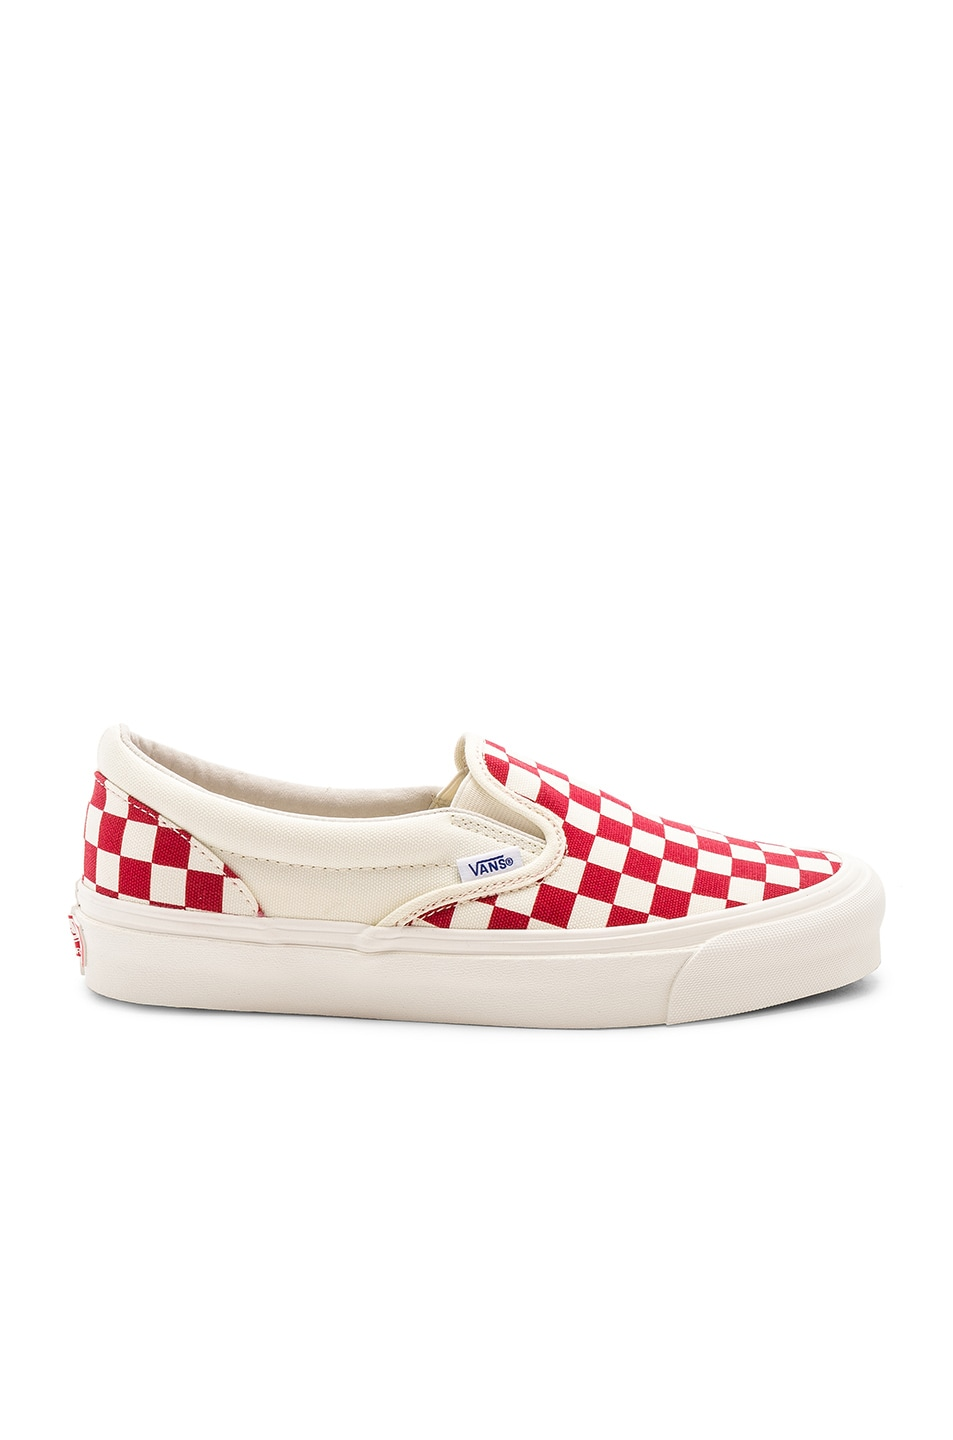 6baaa7b81cde Image 1 of Vans Vault OG Classic Canvas Slip-Ons LX in White   Red